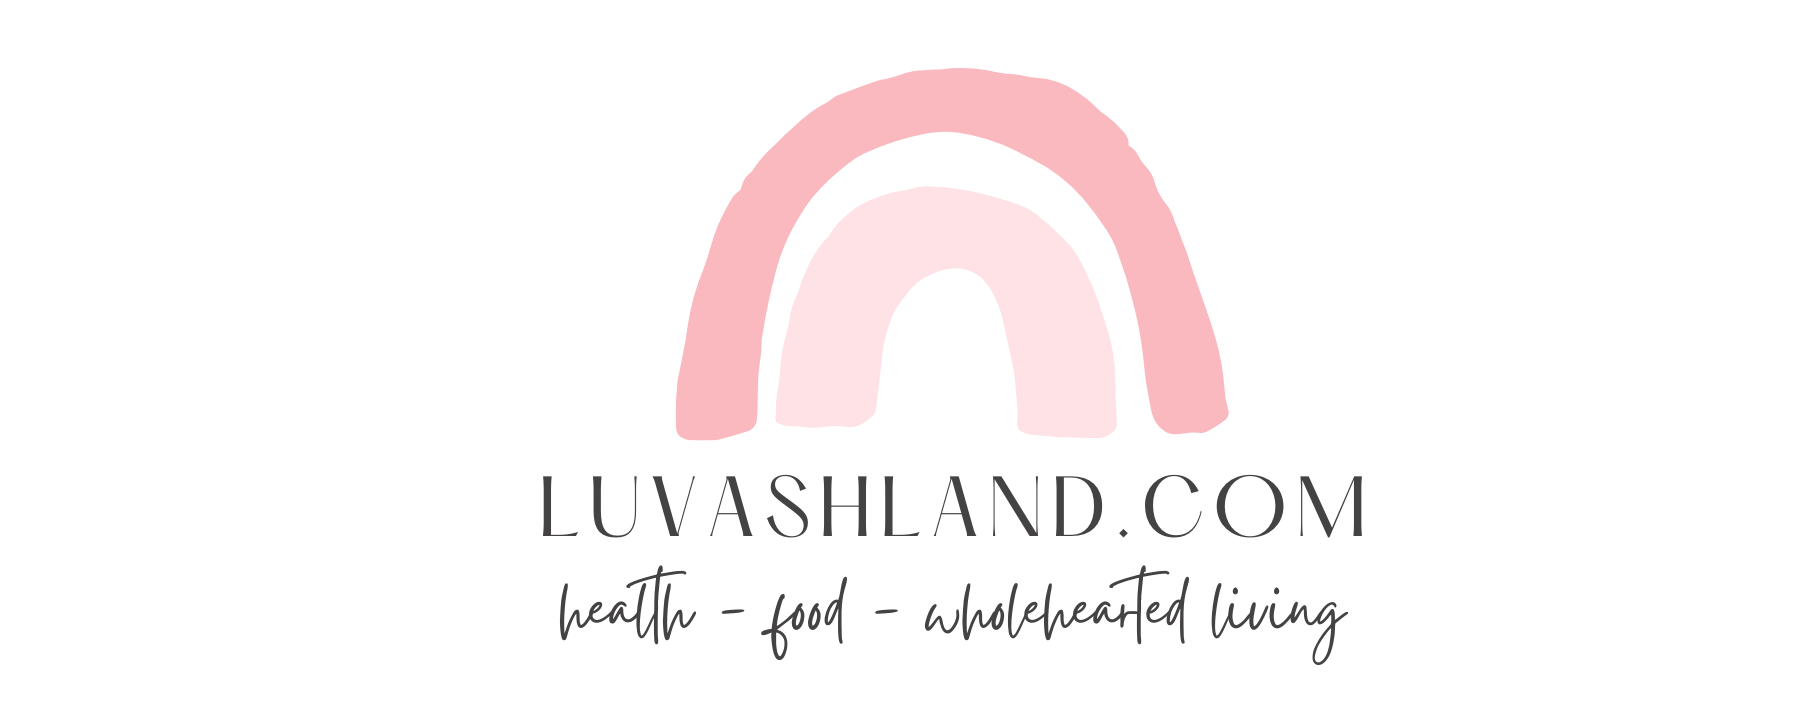 LuvAshland – Health, Food & Wholehearted Living